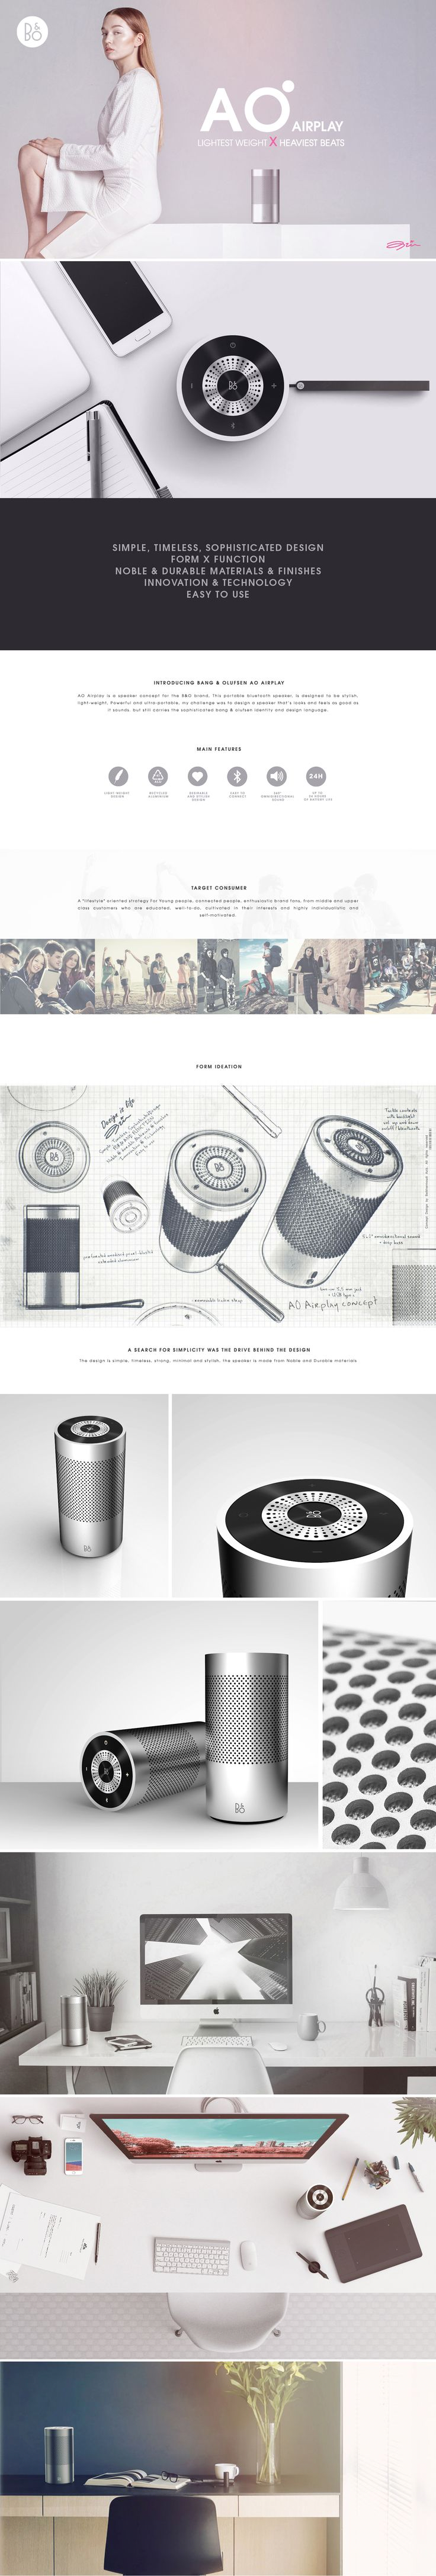 Bang & Olufsen AO Airplay on Behance